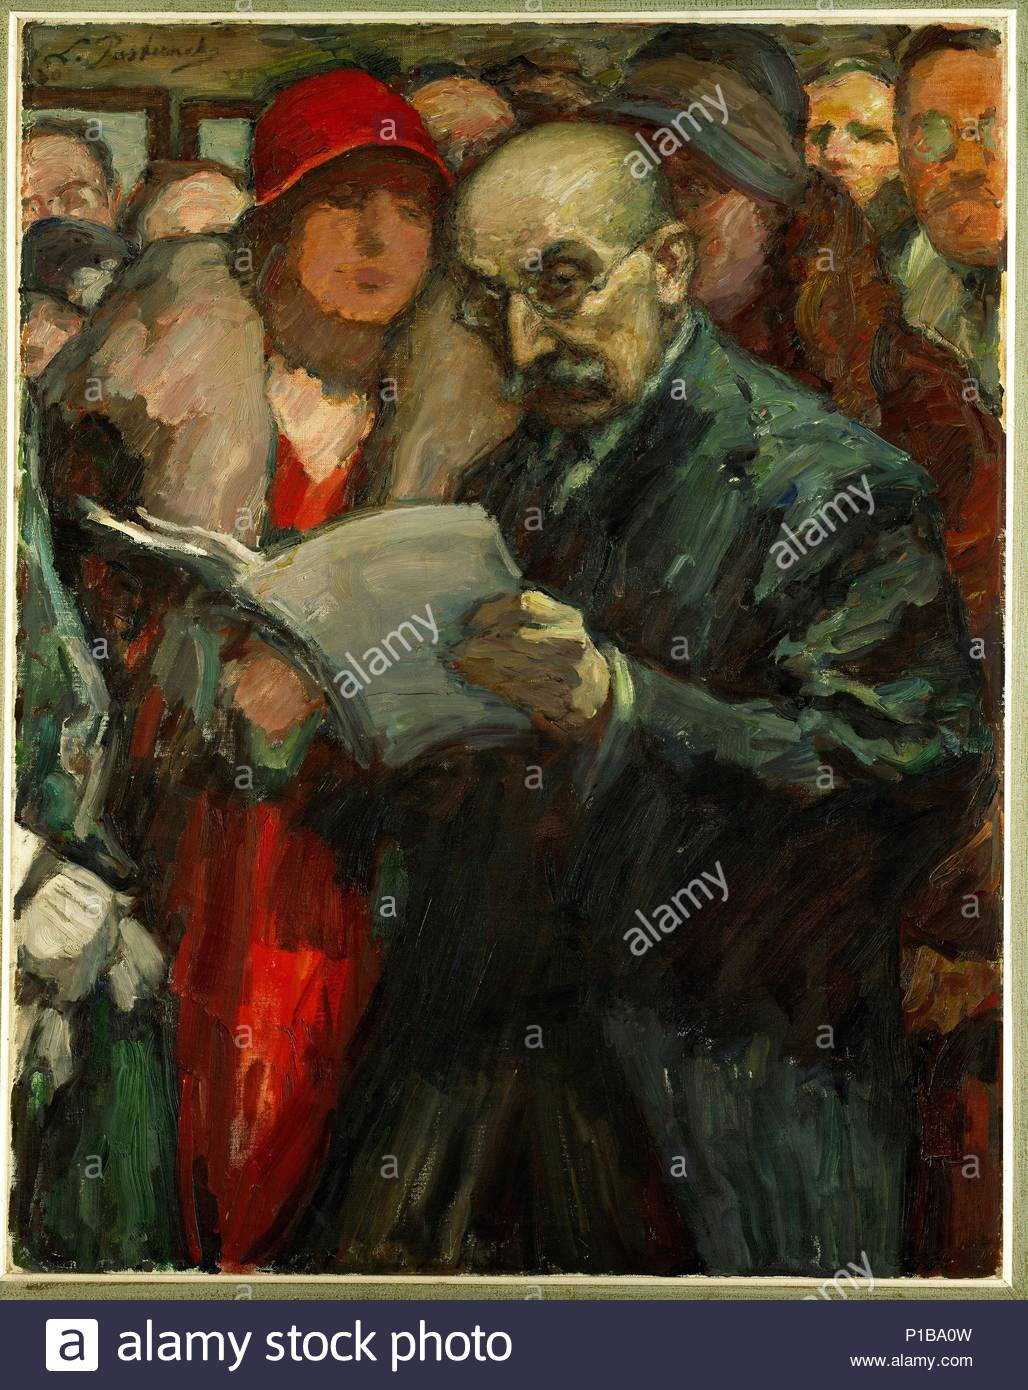 Painter Max Liebermann opens an exhibition at the Akademie in Berlin, of which he was president. 1930. Author: PASTERNAK, LEONID OSSIPOVITCH. Location: Haaretz Museum, Tel Aviv, Israel. - Stock Image